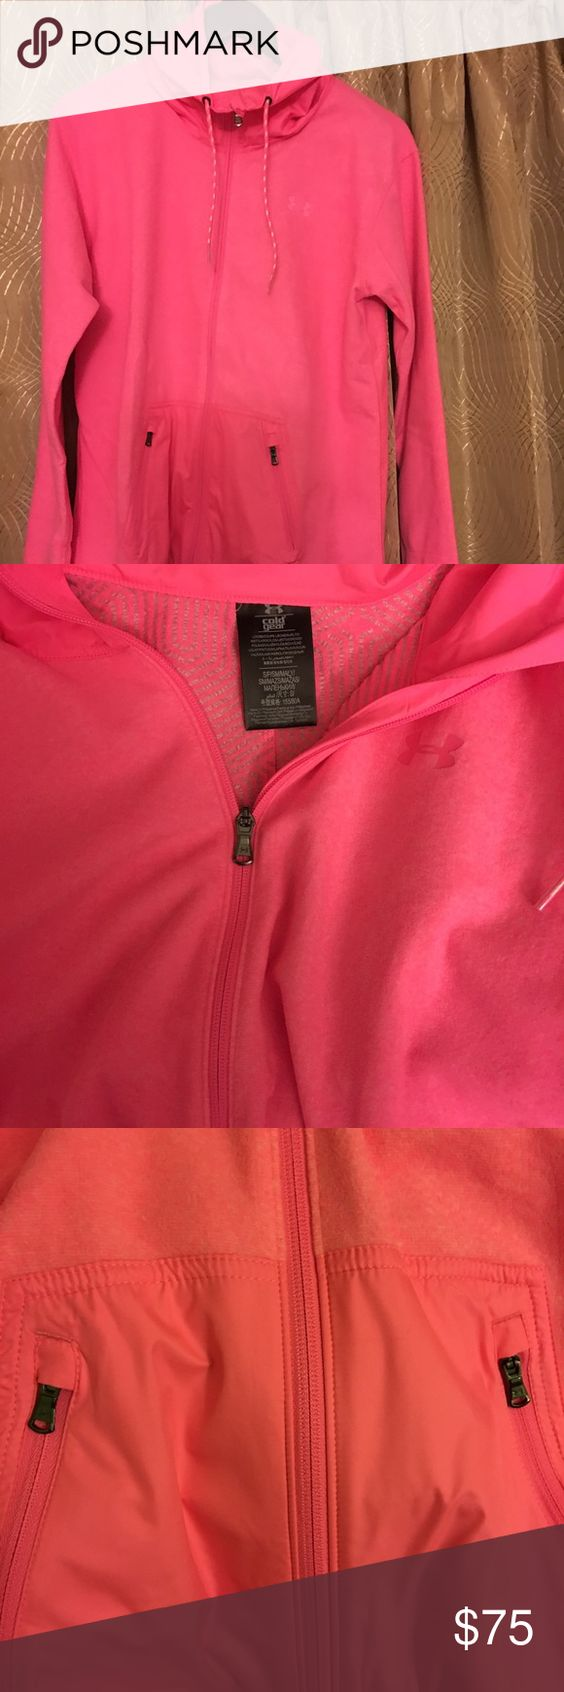 UA zipper pink sweaterNWT | D, Pink and Armour